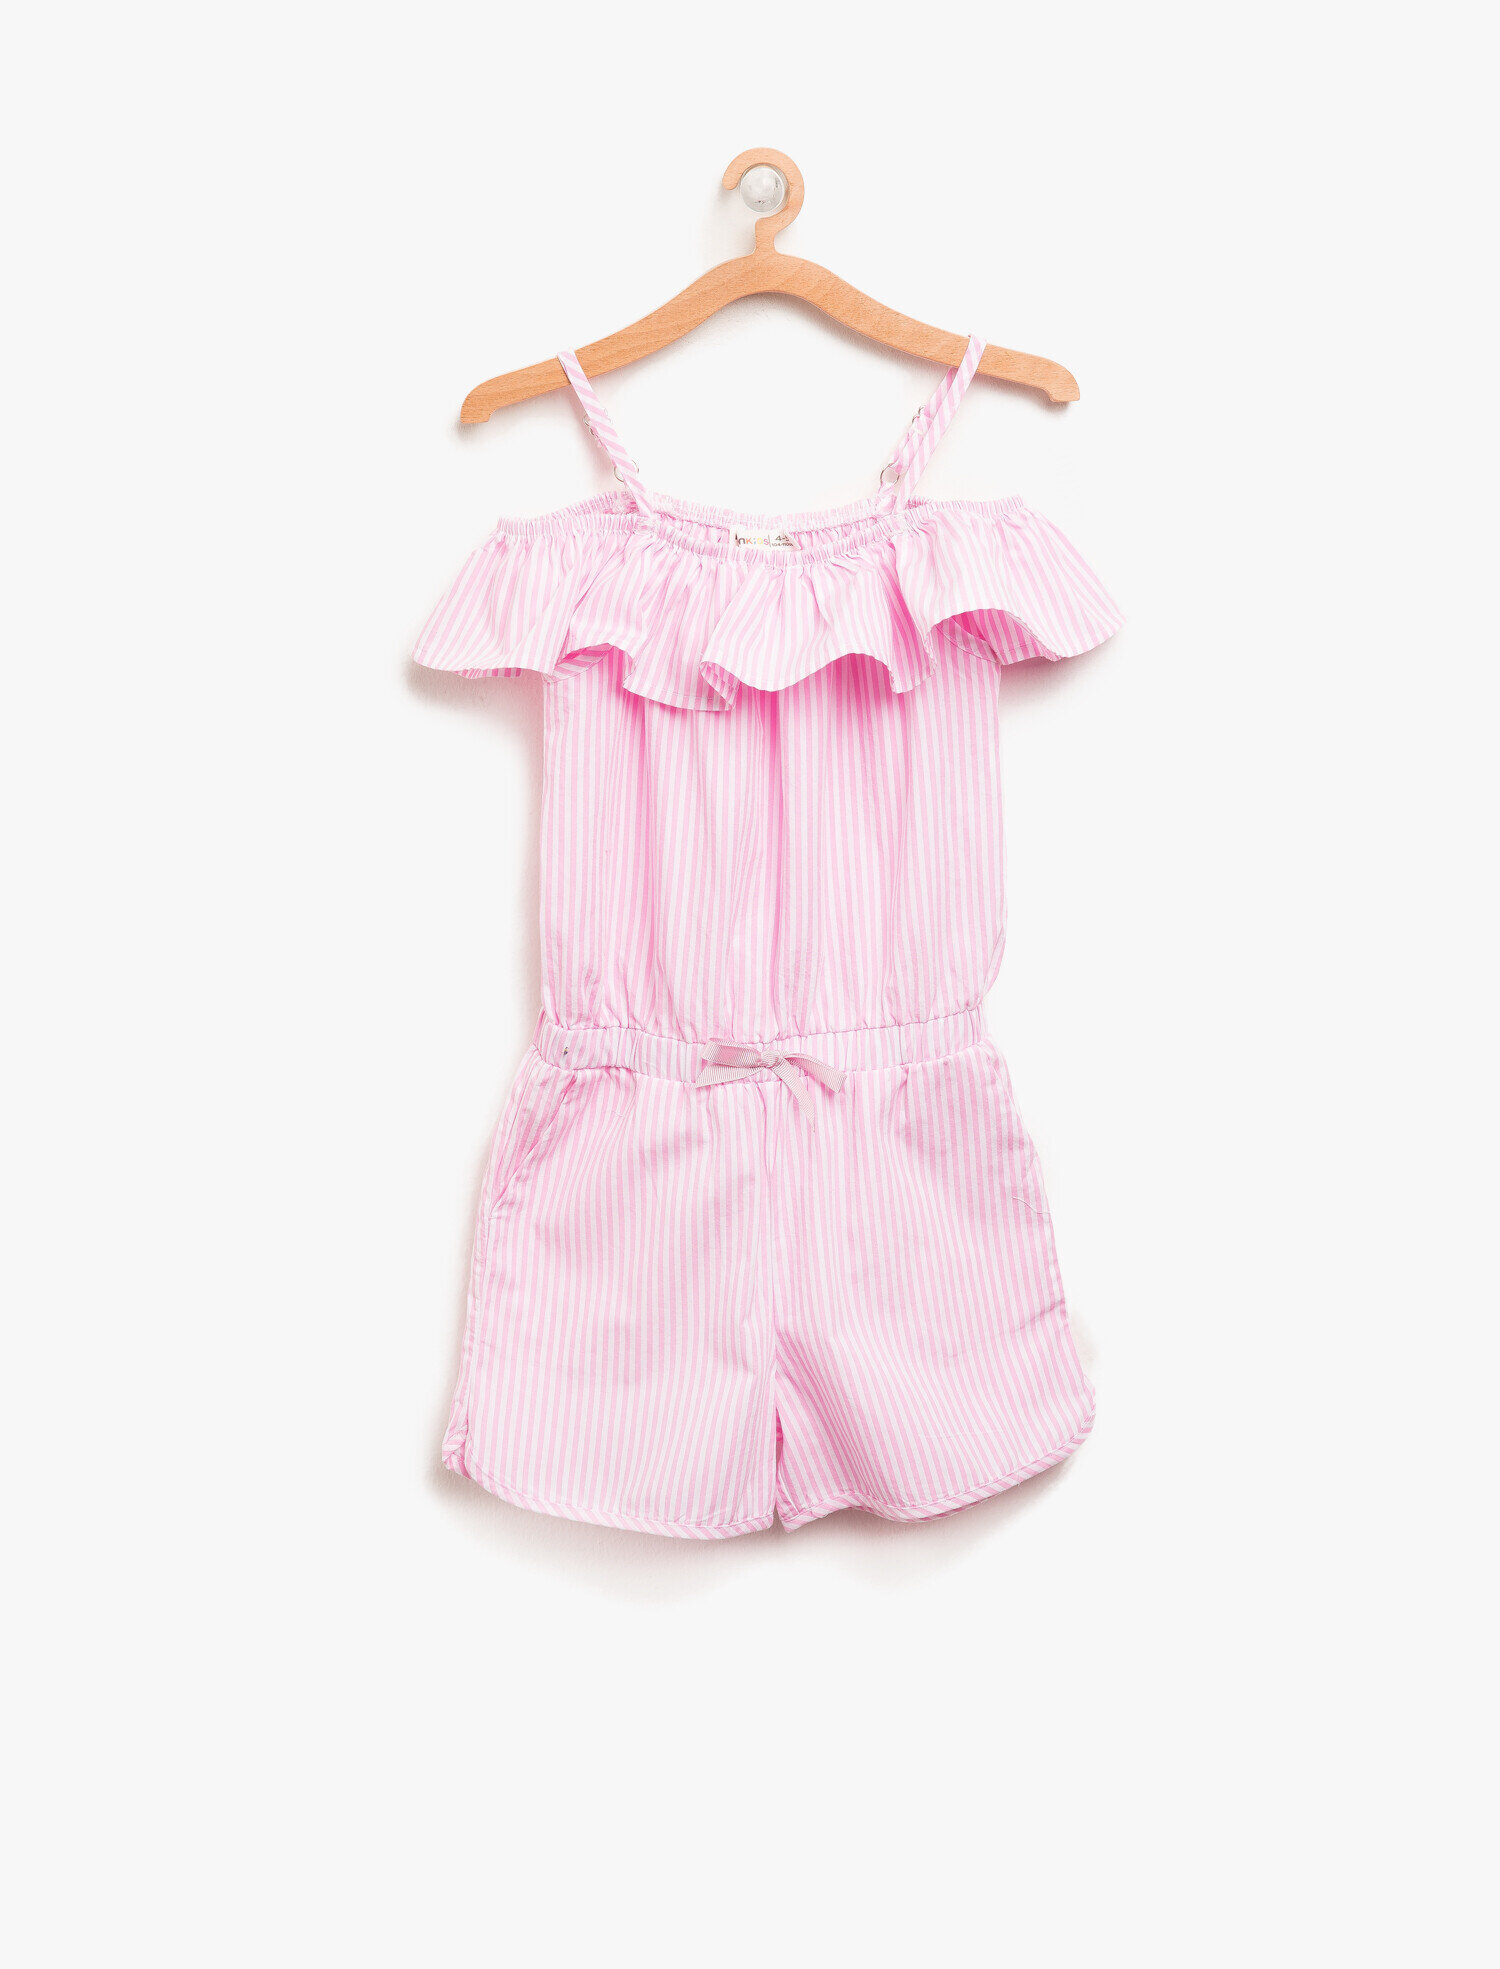 39acf0d8a82 Pink Striped Girls Striped Jumpsuit 8YKG47854OWBT7